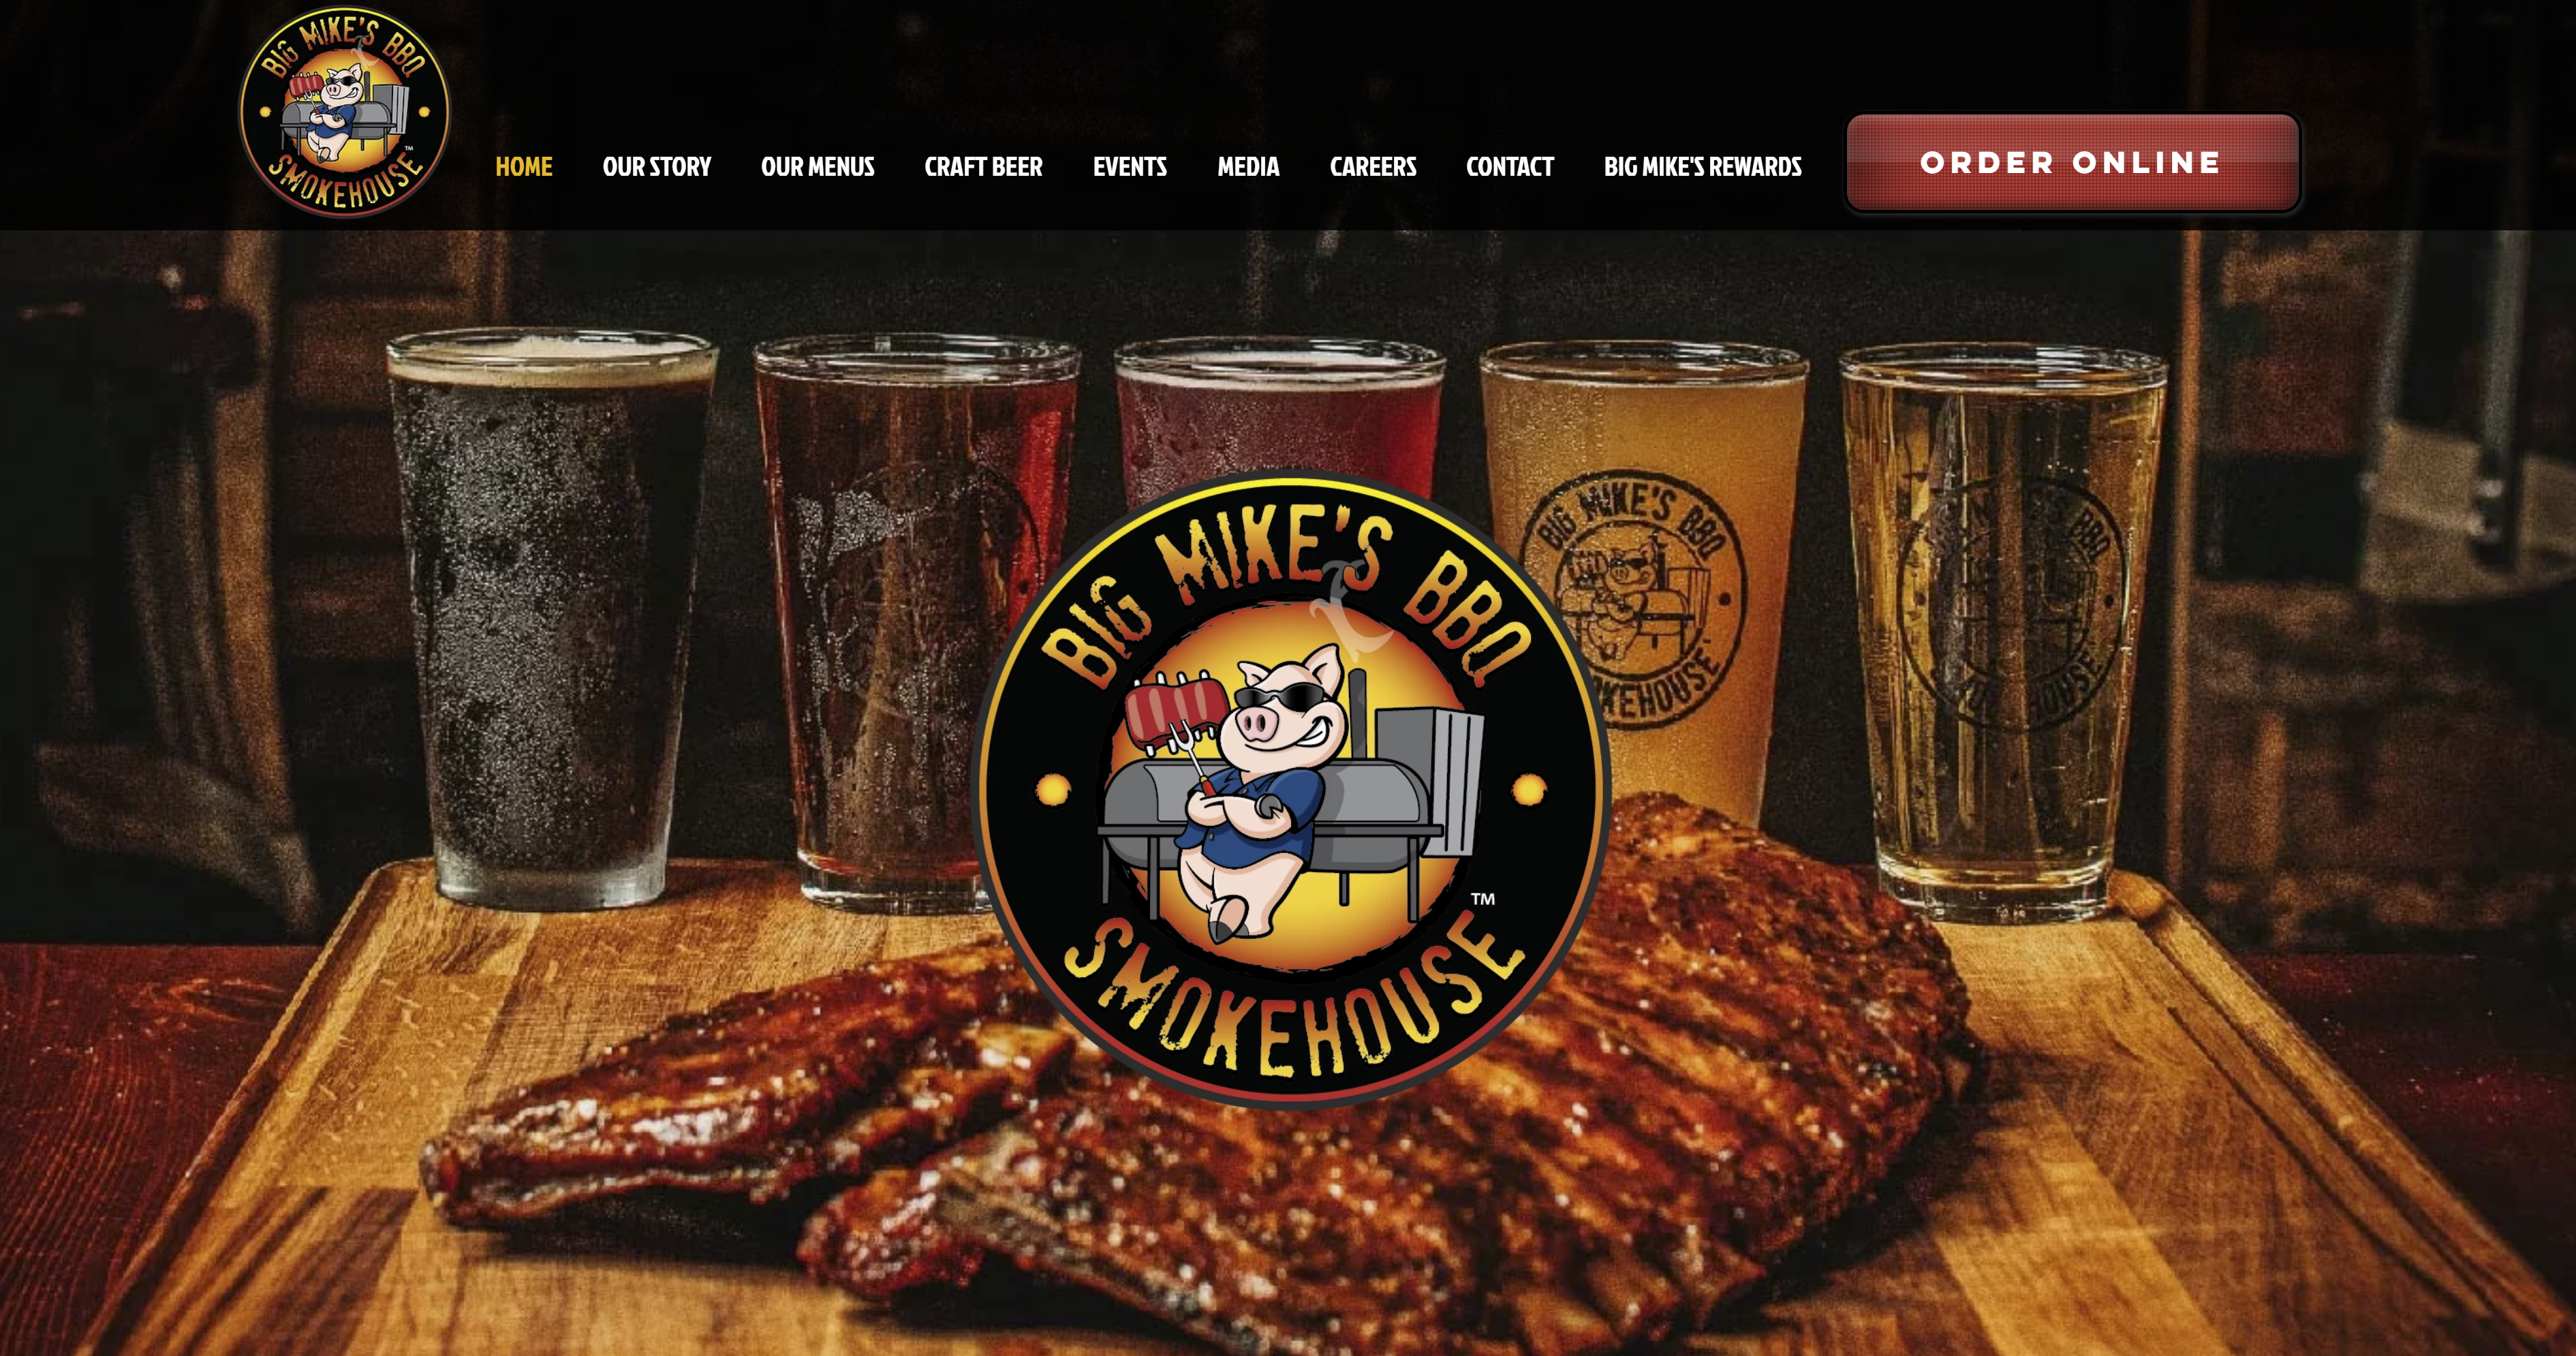 Big Mike's Website ribs